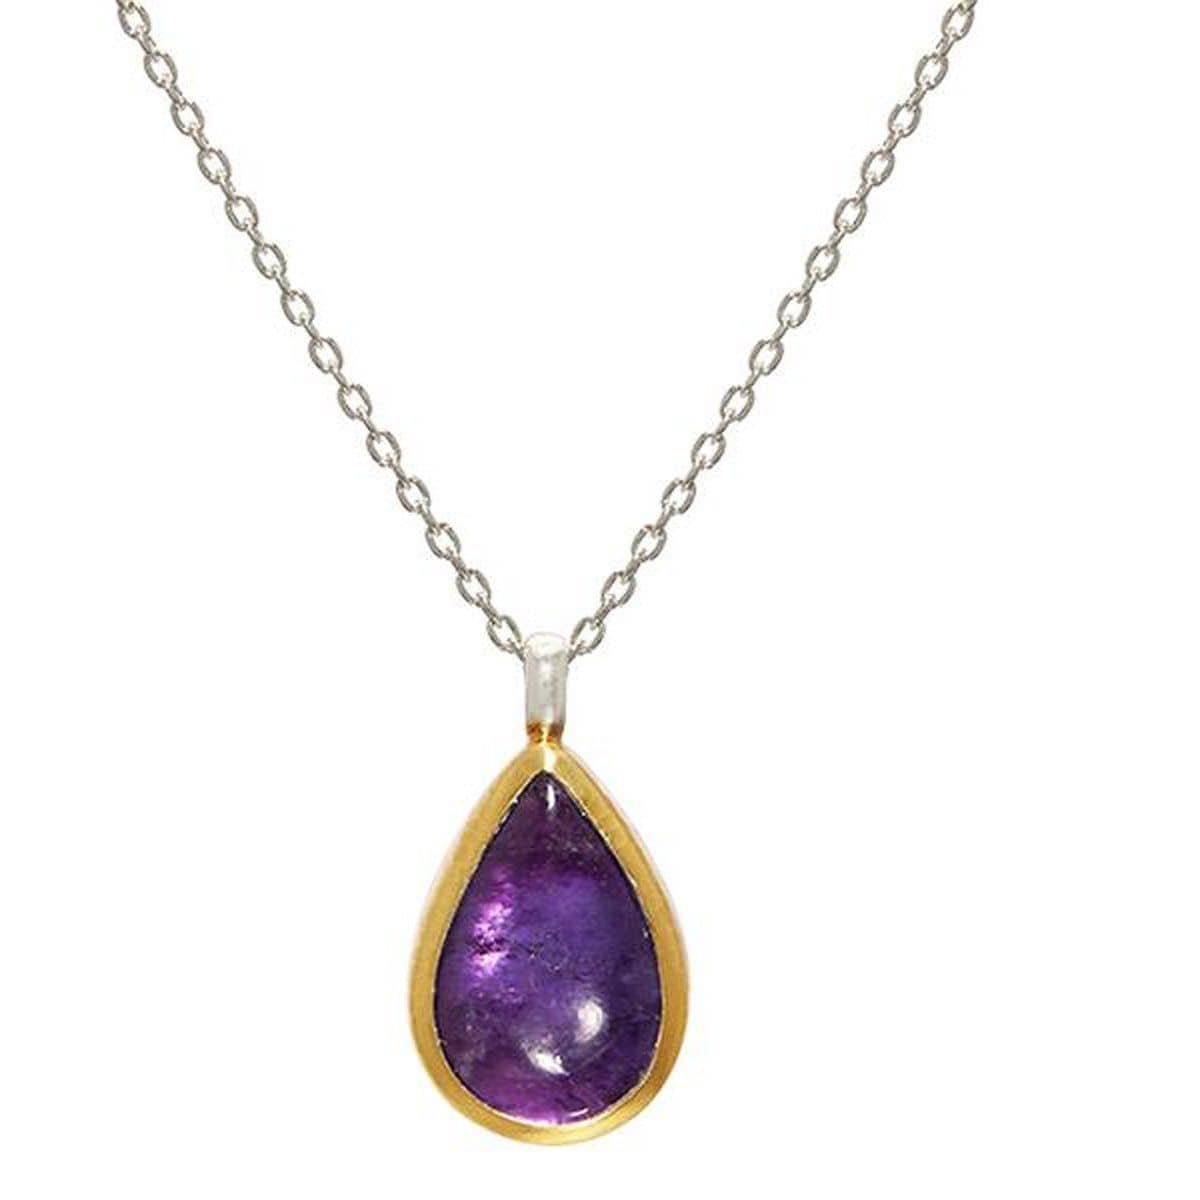 Limited Edition Amethyst Pendant Necklace - SCHN-LE-AM-DR-M-GF